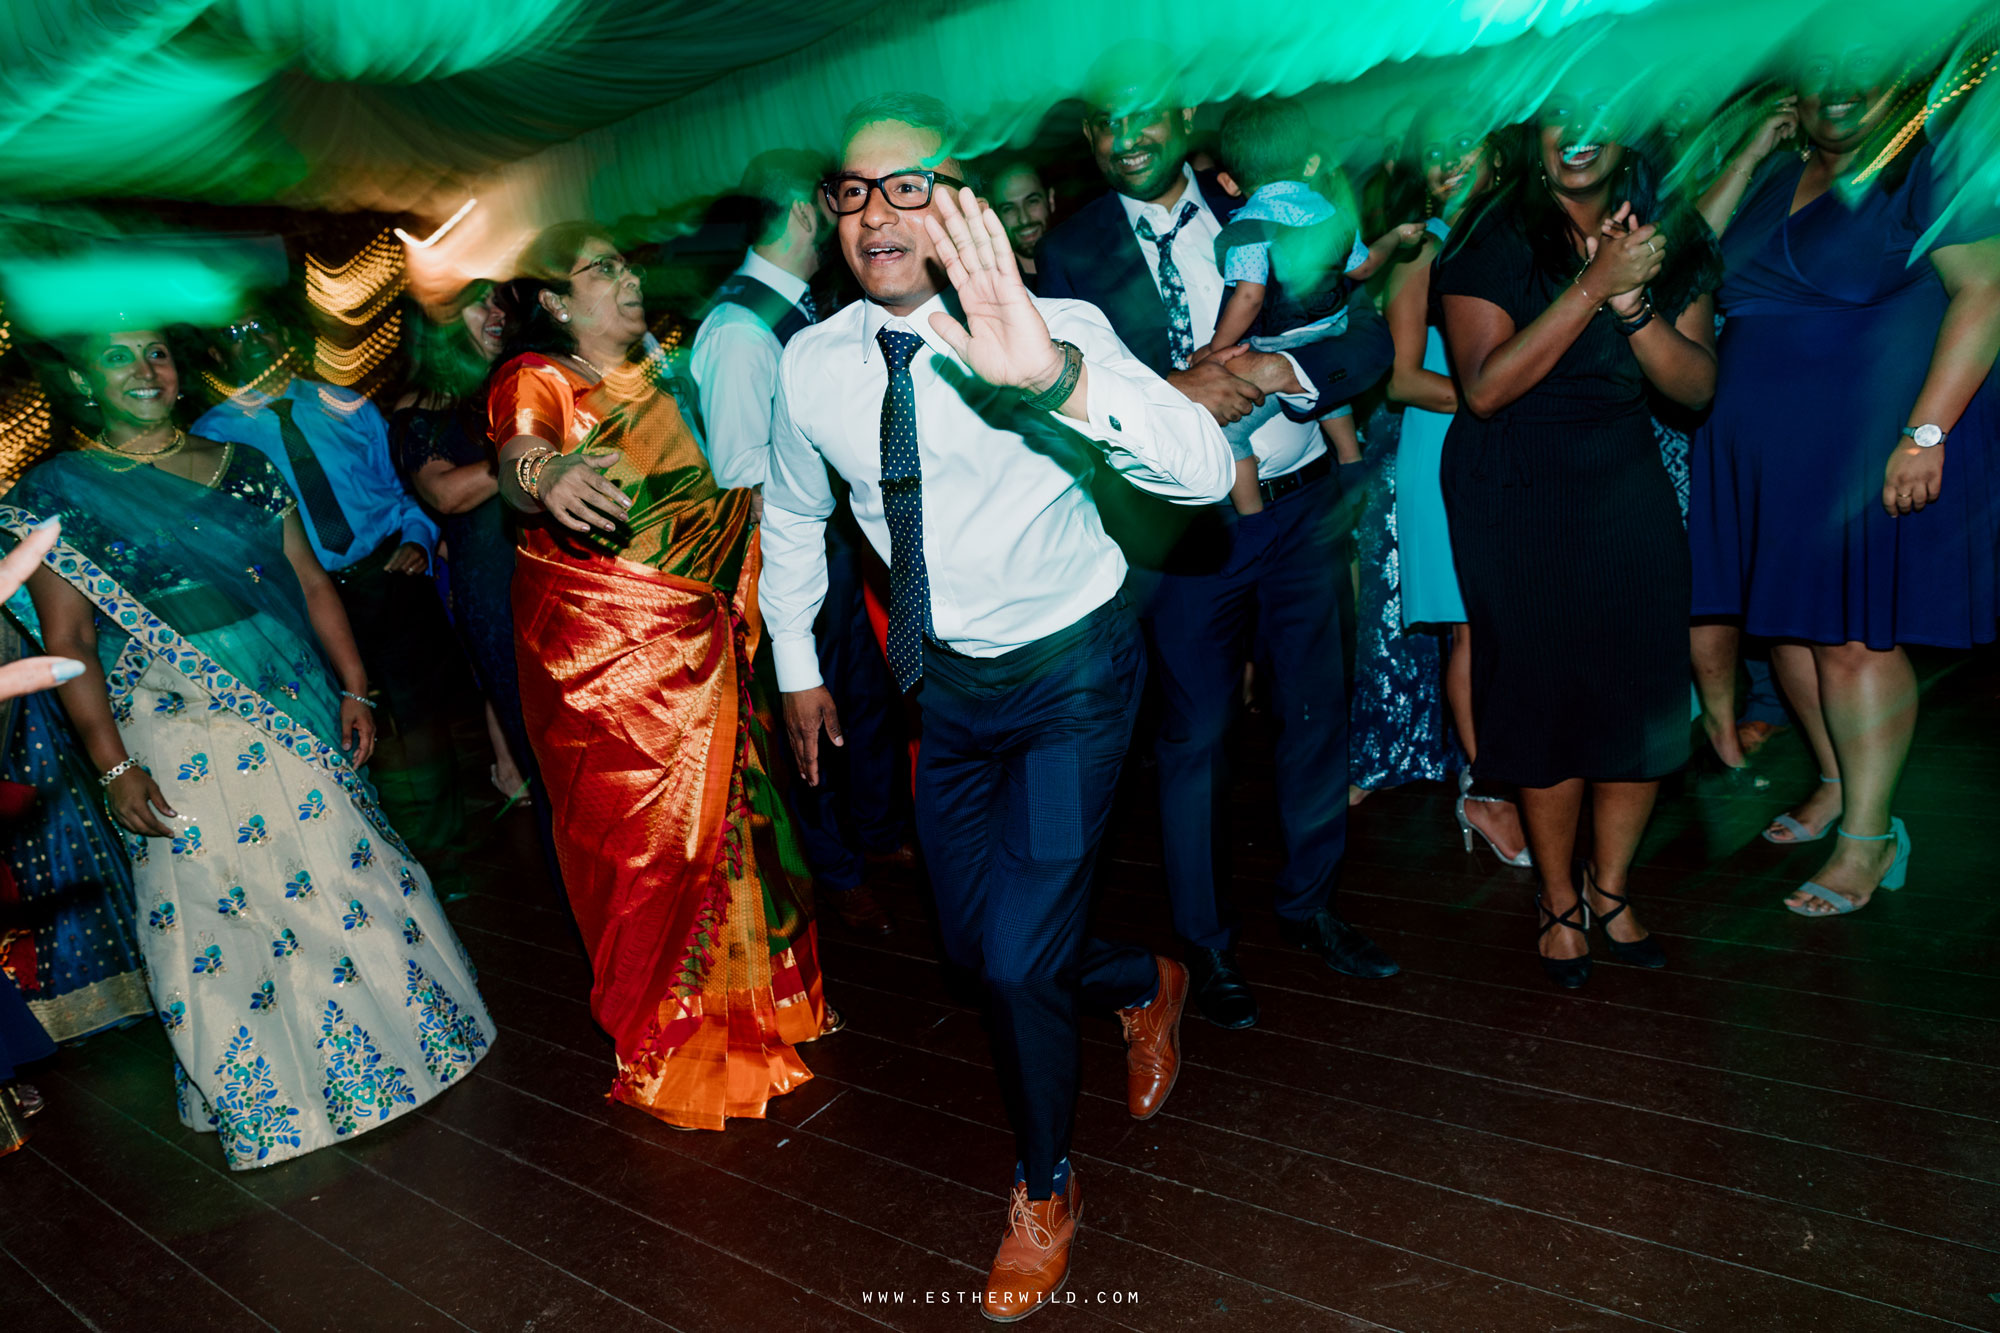 Northbrook_Park_Farnham_Surrey_London_Wedding_Hindu_Fusion_Esther_Wild_Photographer_IMG_7152.jpg